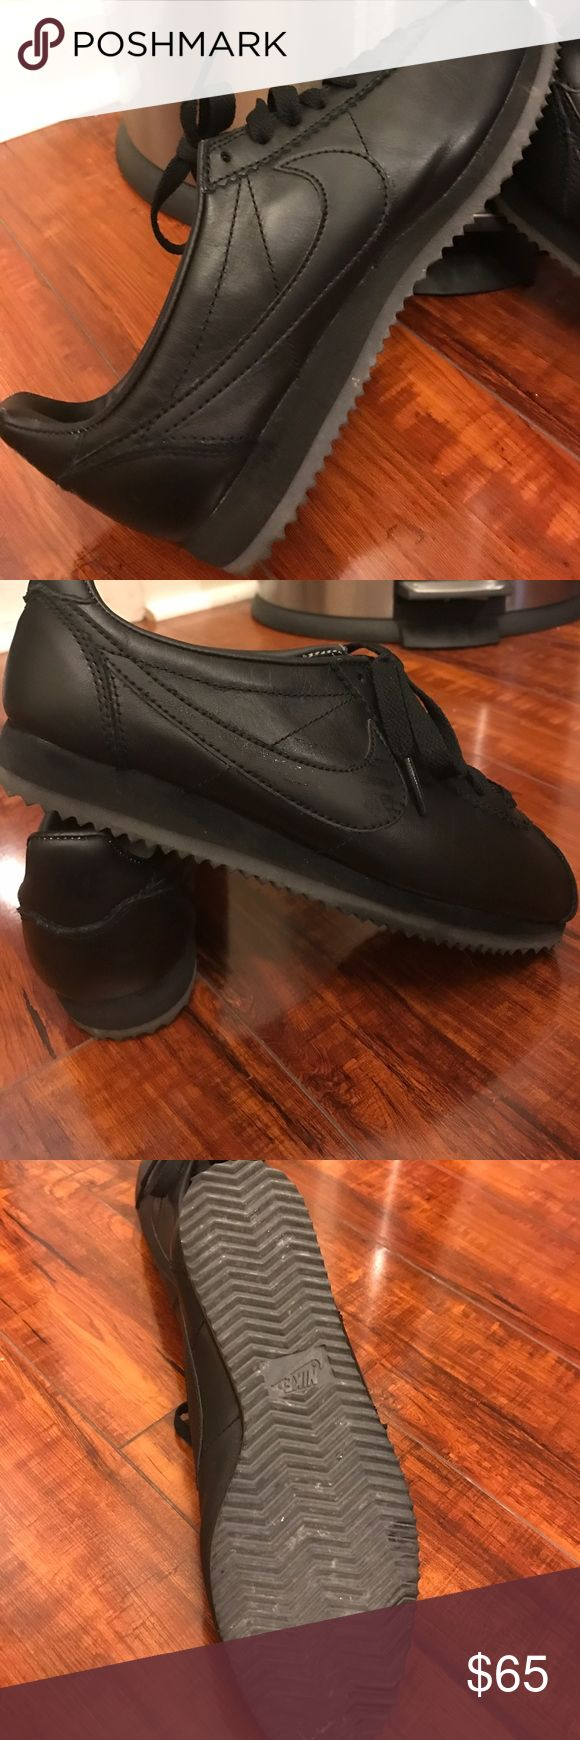 """💯 NIKE ID one of a kind Dope Mans 🖤🖤 Only worn twice, totally awesome """"Dope Man"""" NIKE, made on Nike ID BLACK ON BLACK 🖤🖤🖤 Nike Shoes Athletic Shoes"""